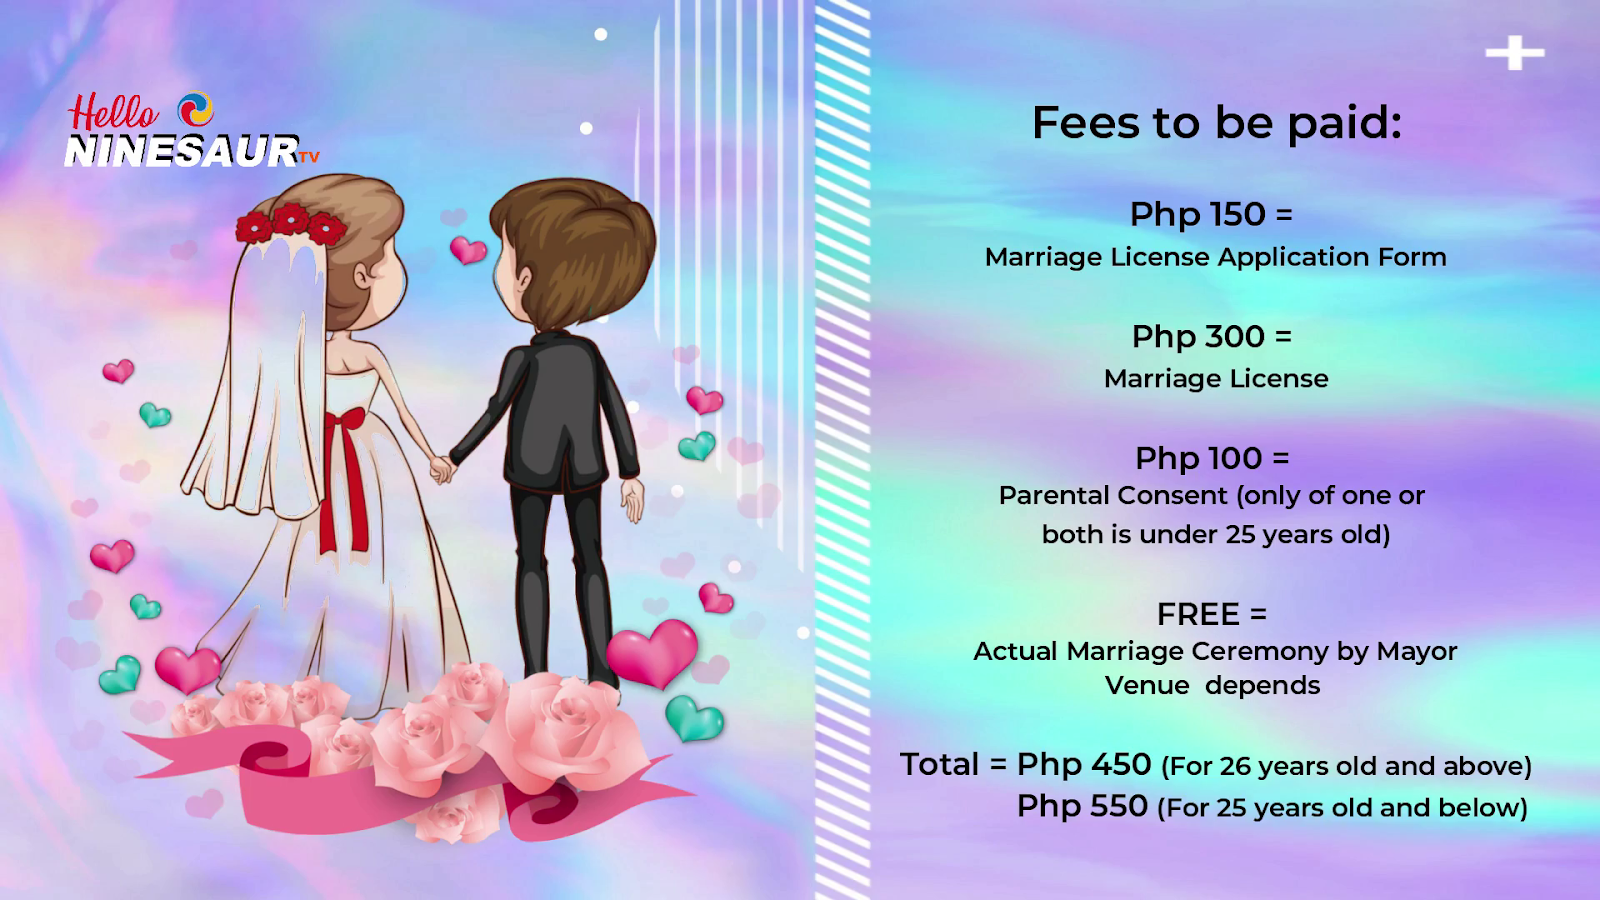 application for marriage license philippines pdf